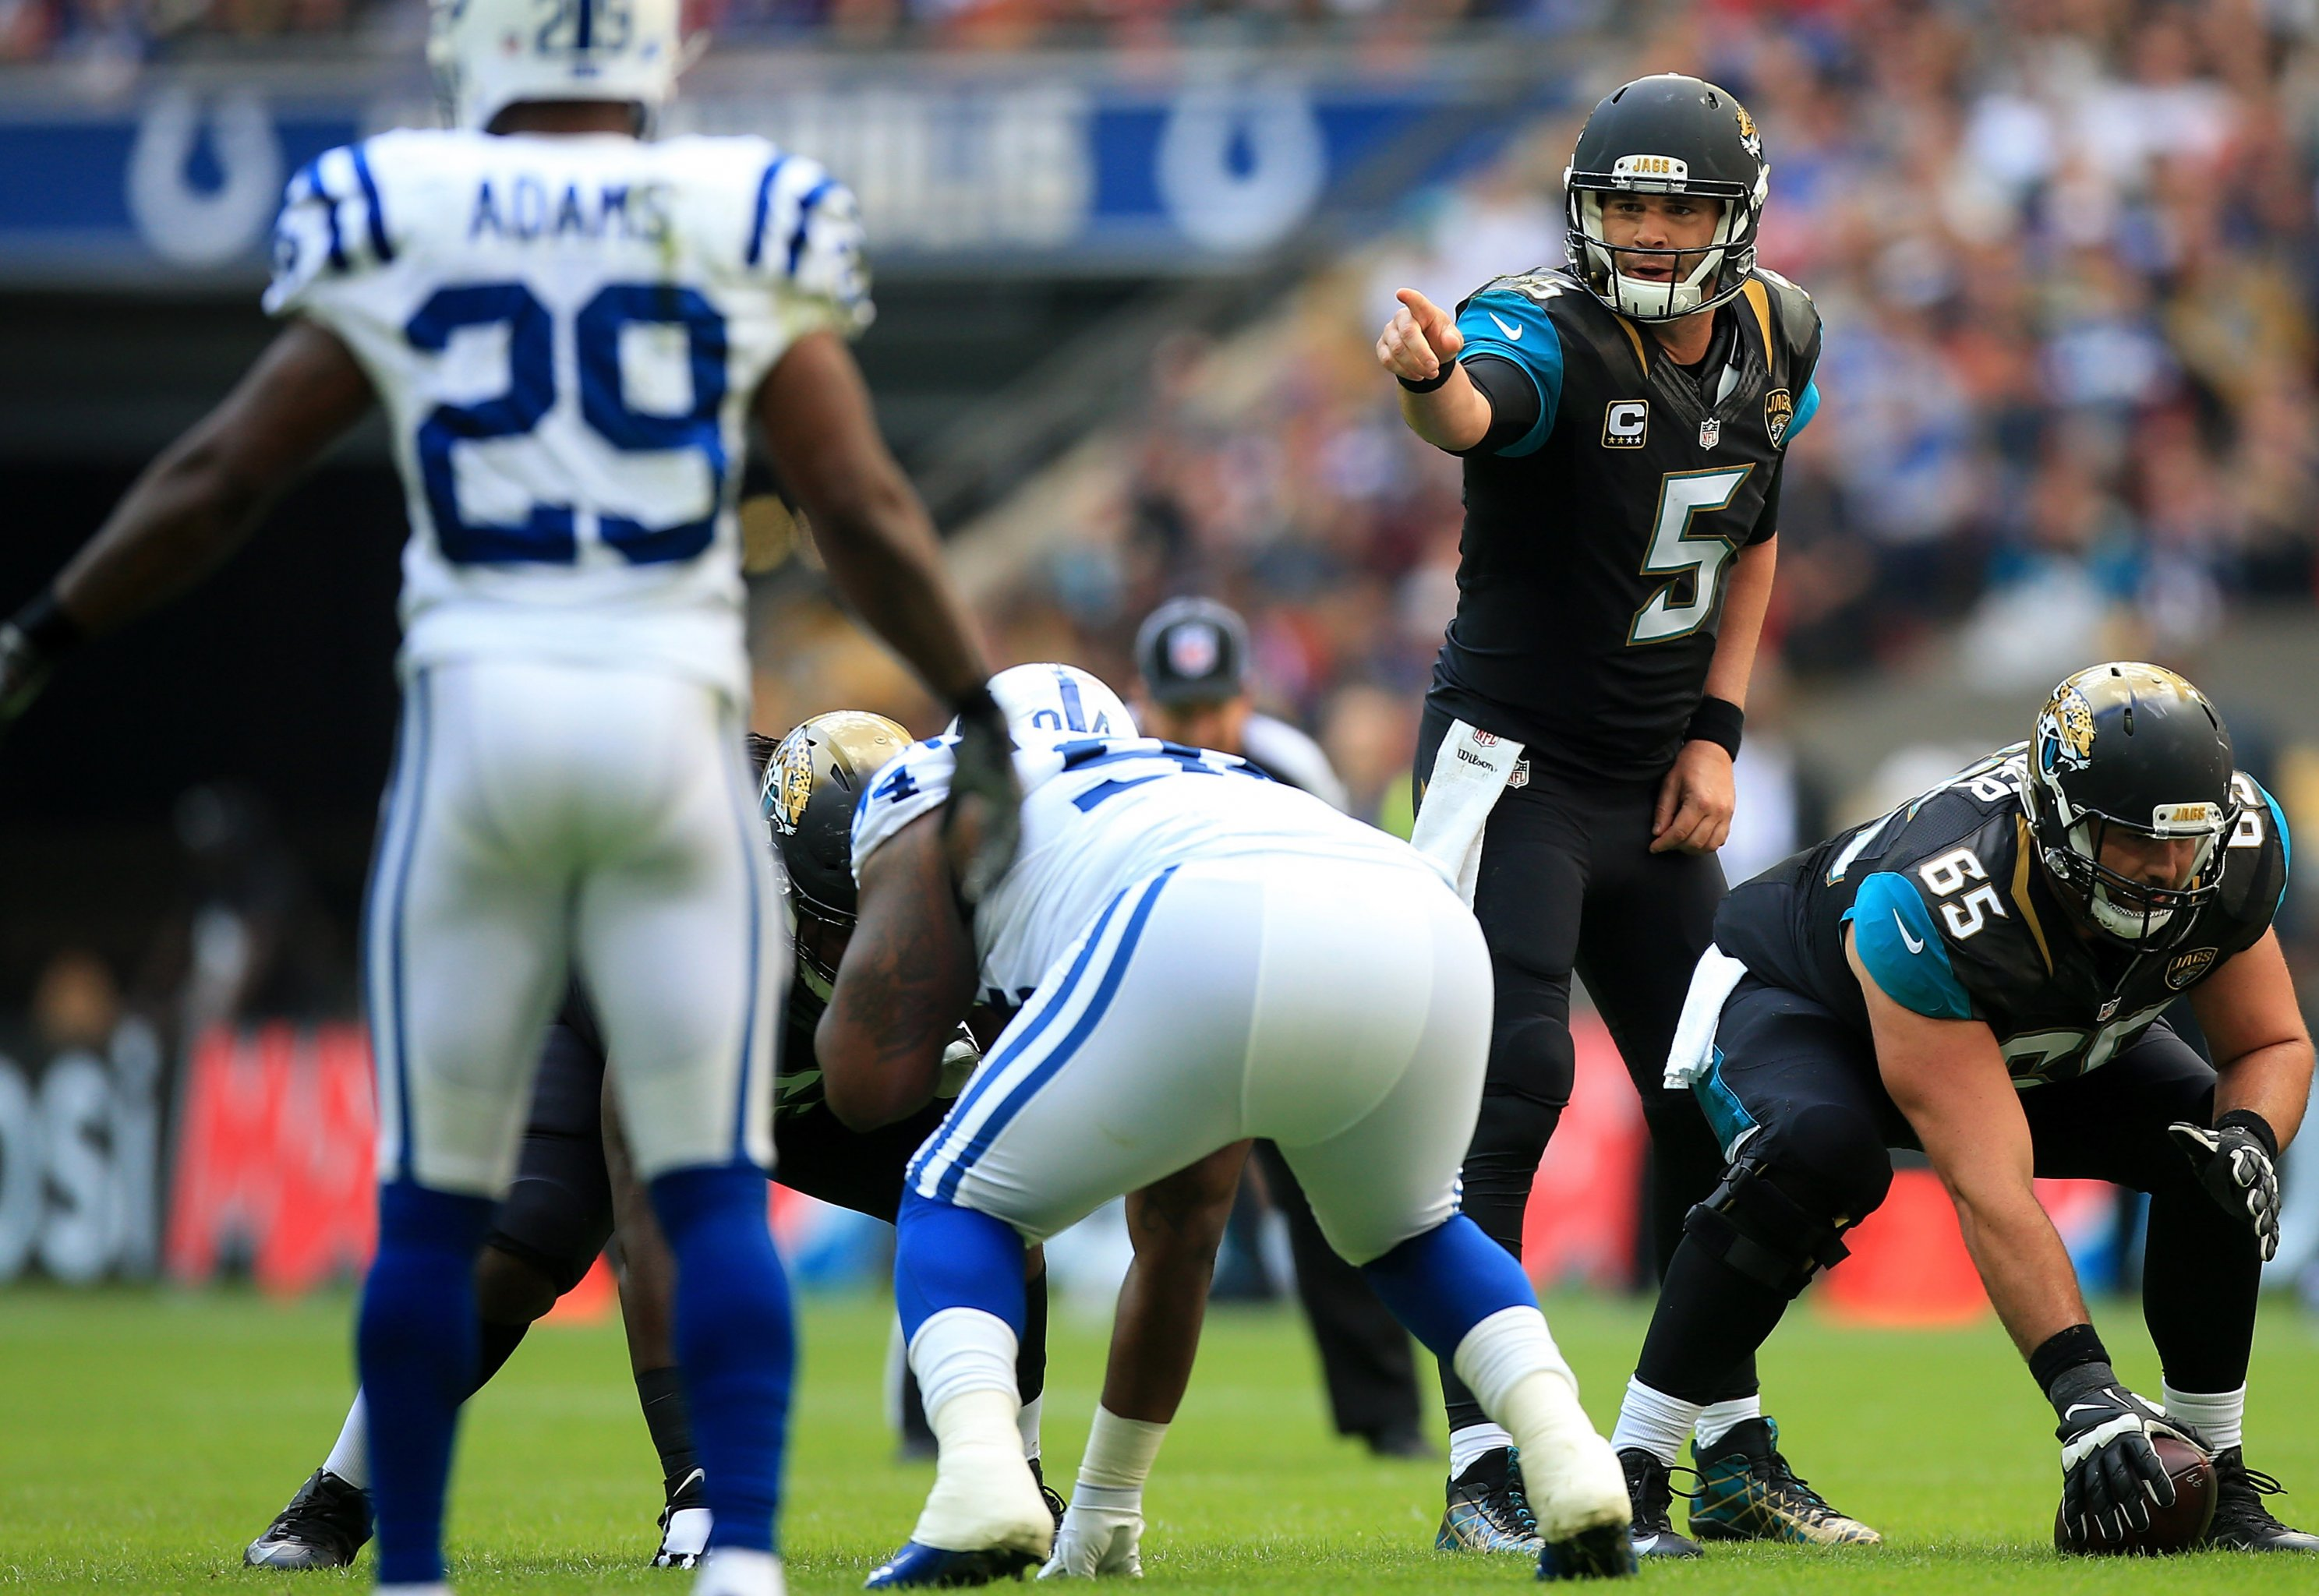 f0173894 The Jaguars See a Champion in Blake Bortles, And They Don't Care If ...